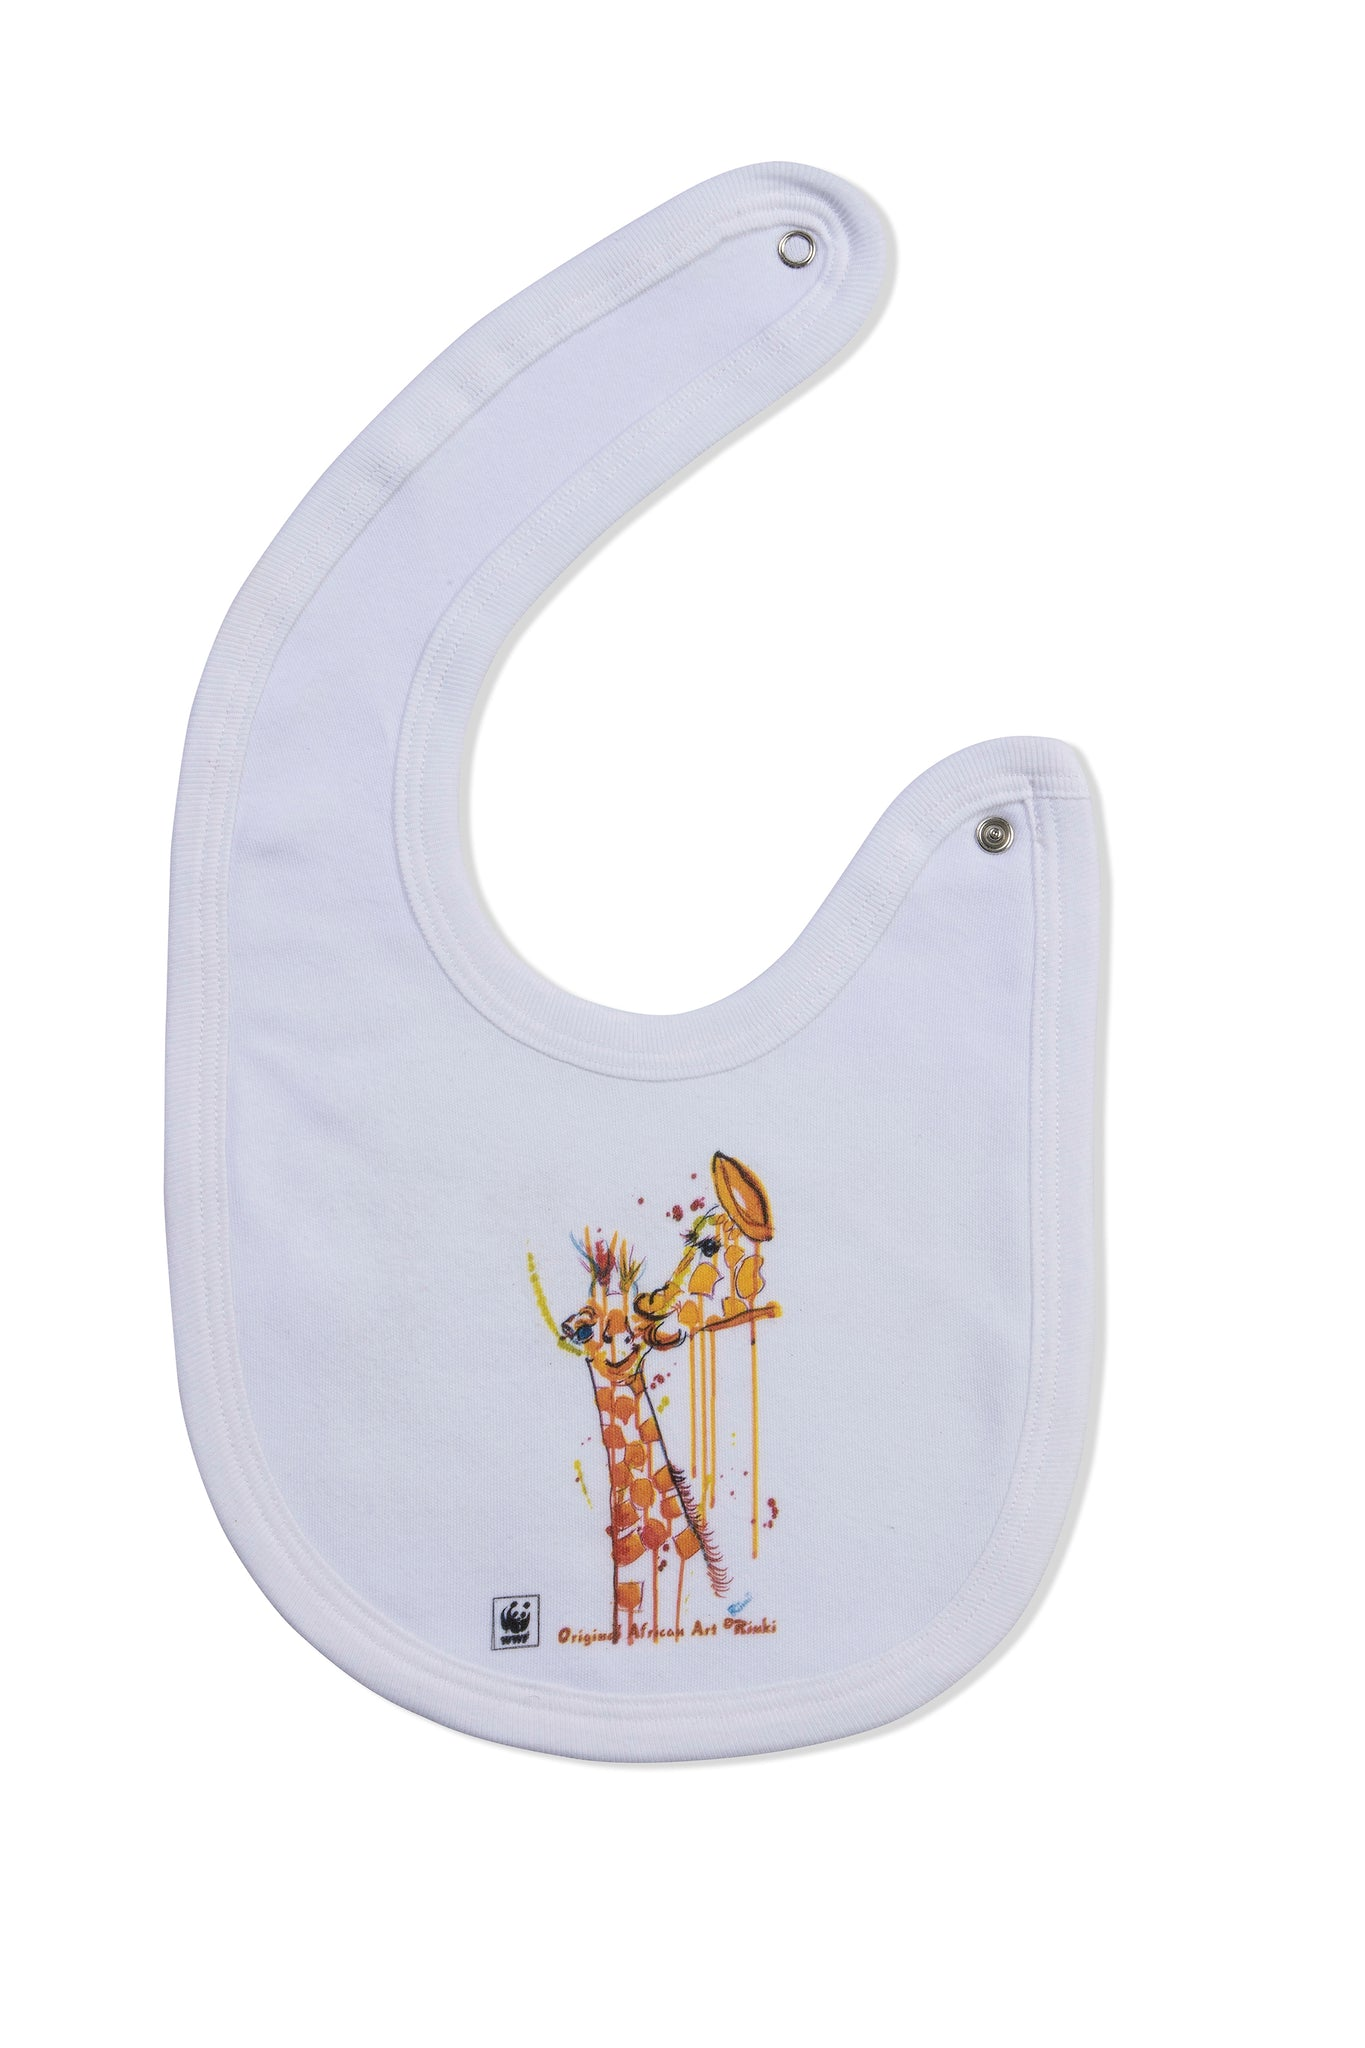 WWF Rinki Collection Giraffe Bath-time Bib